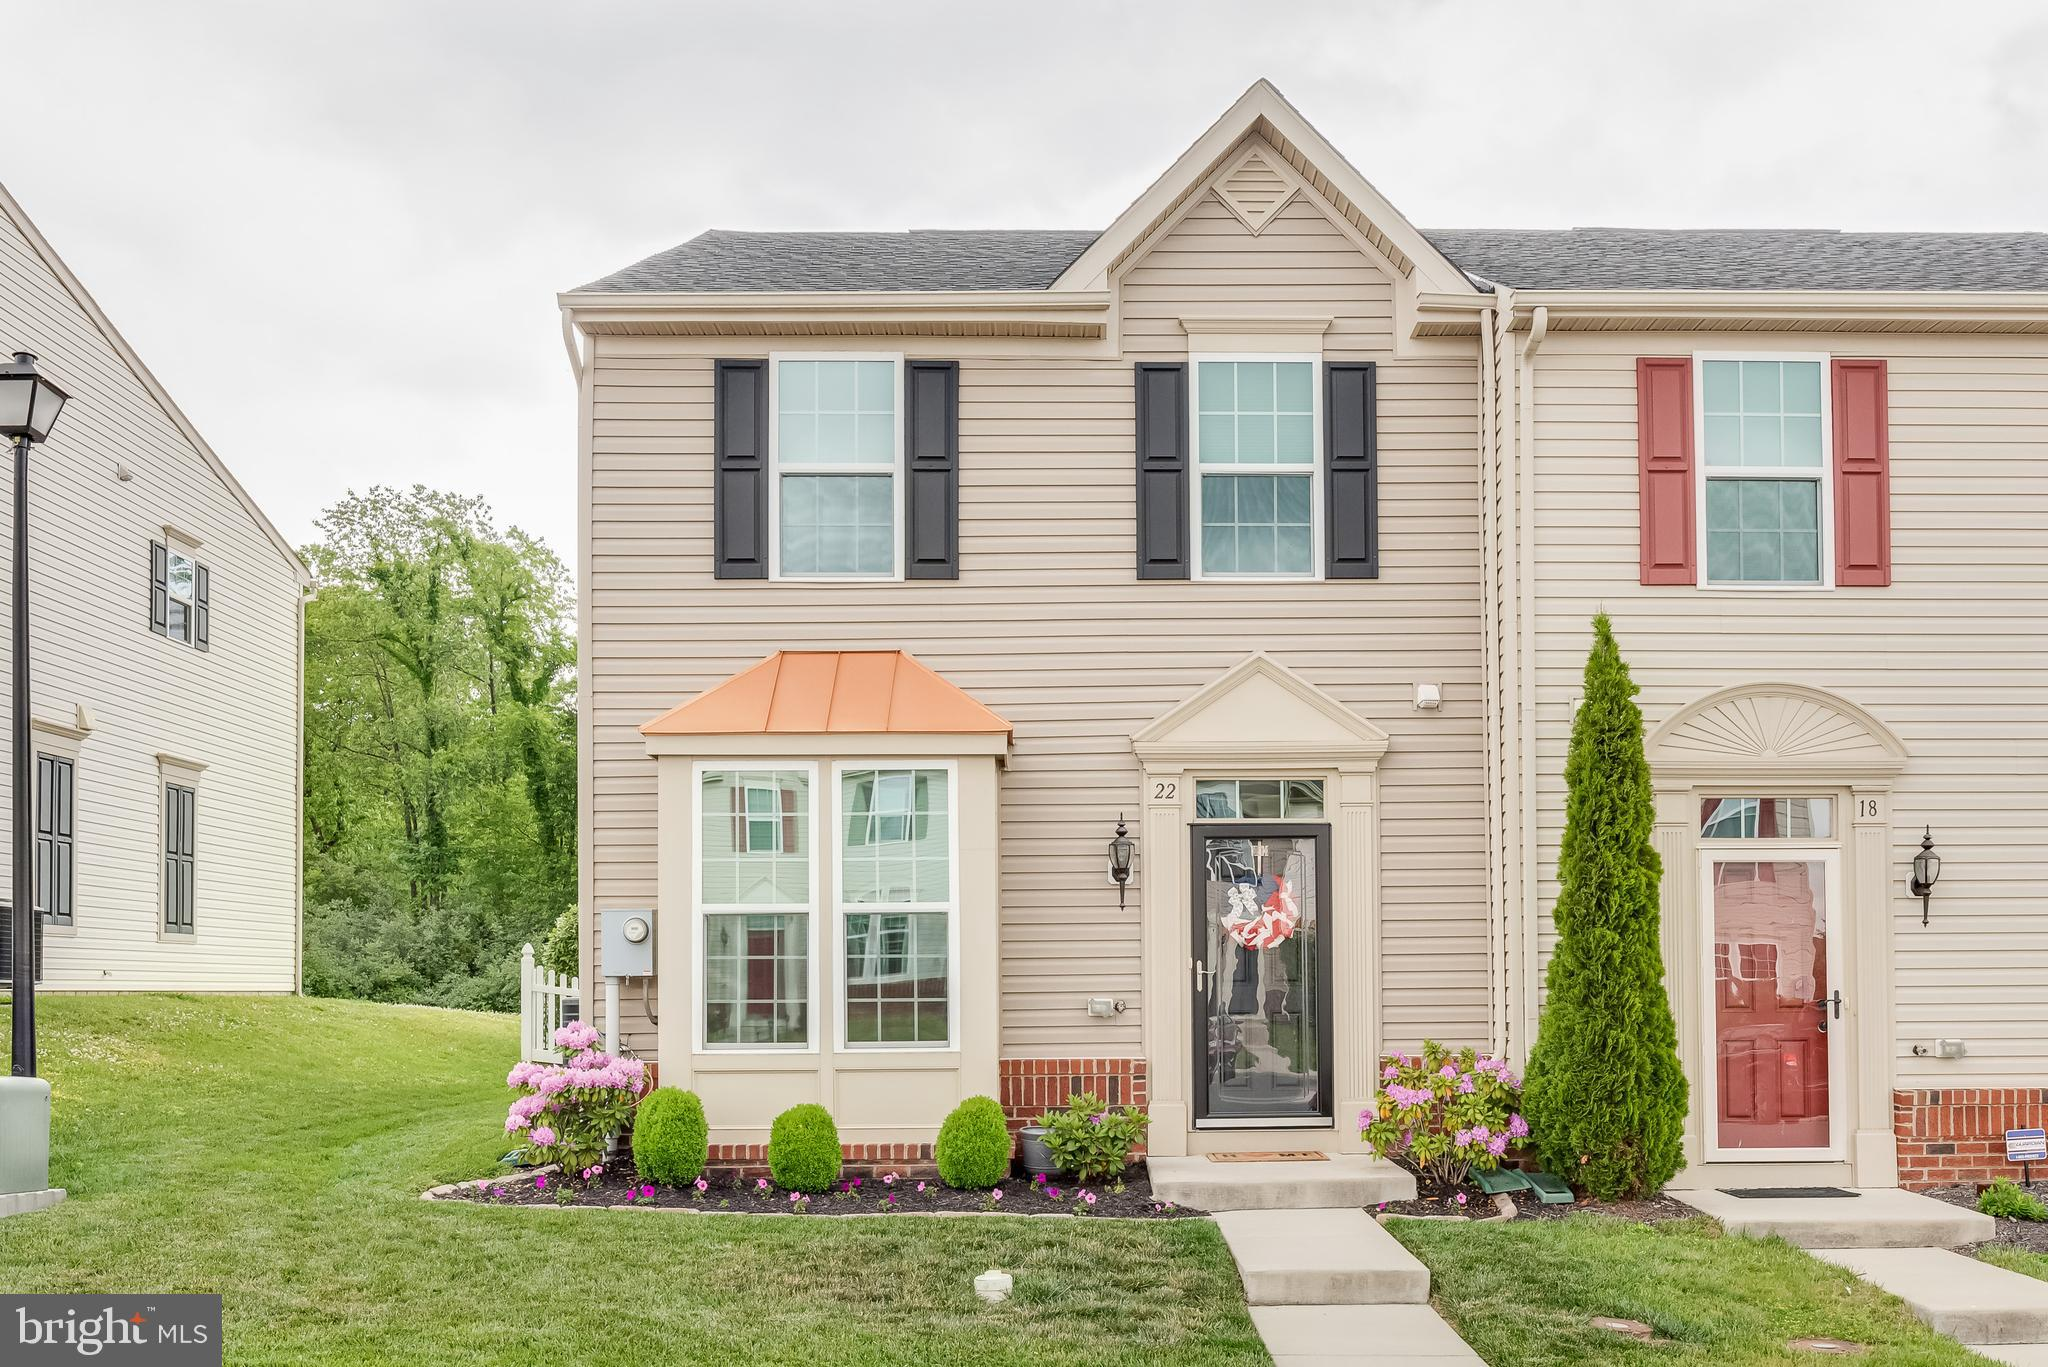 WELCOME HOME...THIS BEAUTIFUL AND COZY END UNIT TOWN HOME OFFERS 3 BEDROOMS AND 2.5 BATHS, WITH UPGR